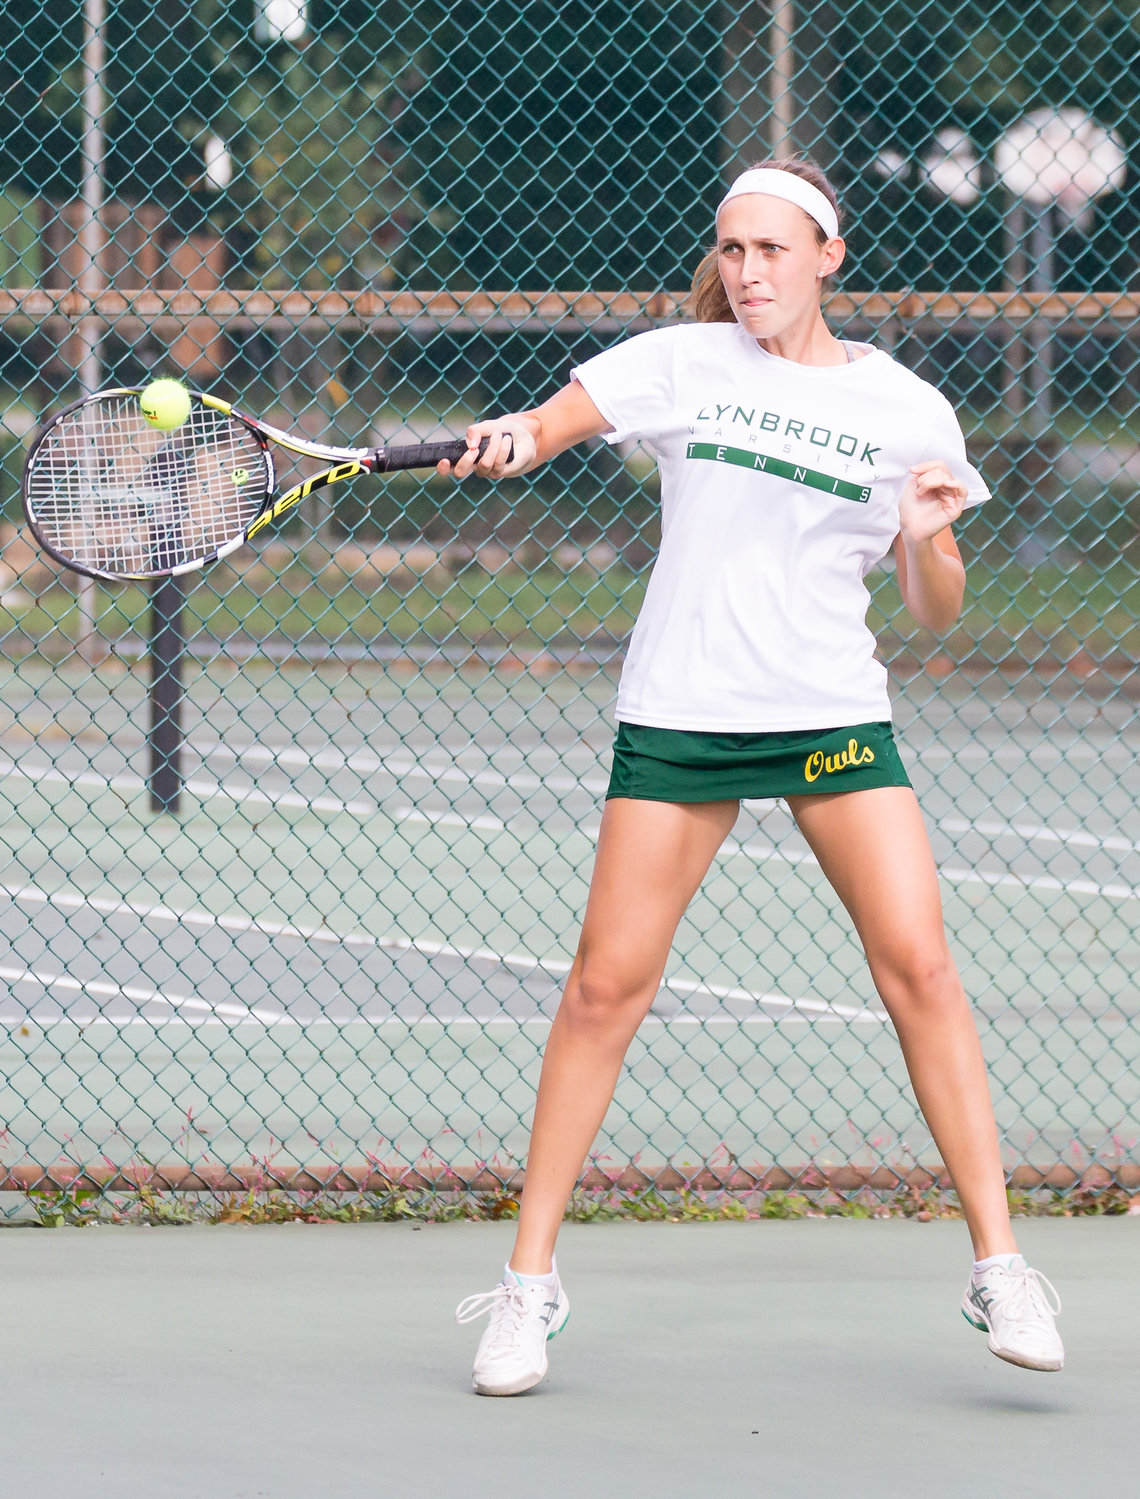 Senior Casey Kaplan is the top singles player for the Lady Owls, who were victorious in 11 of their first 12 matches.